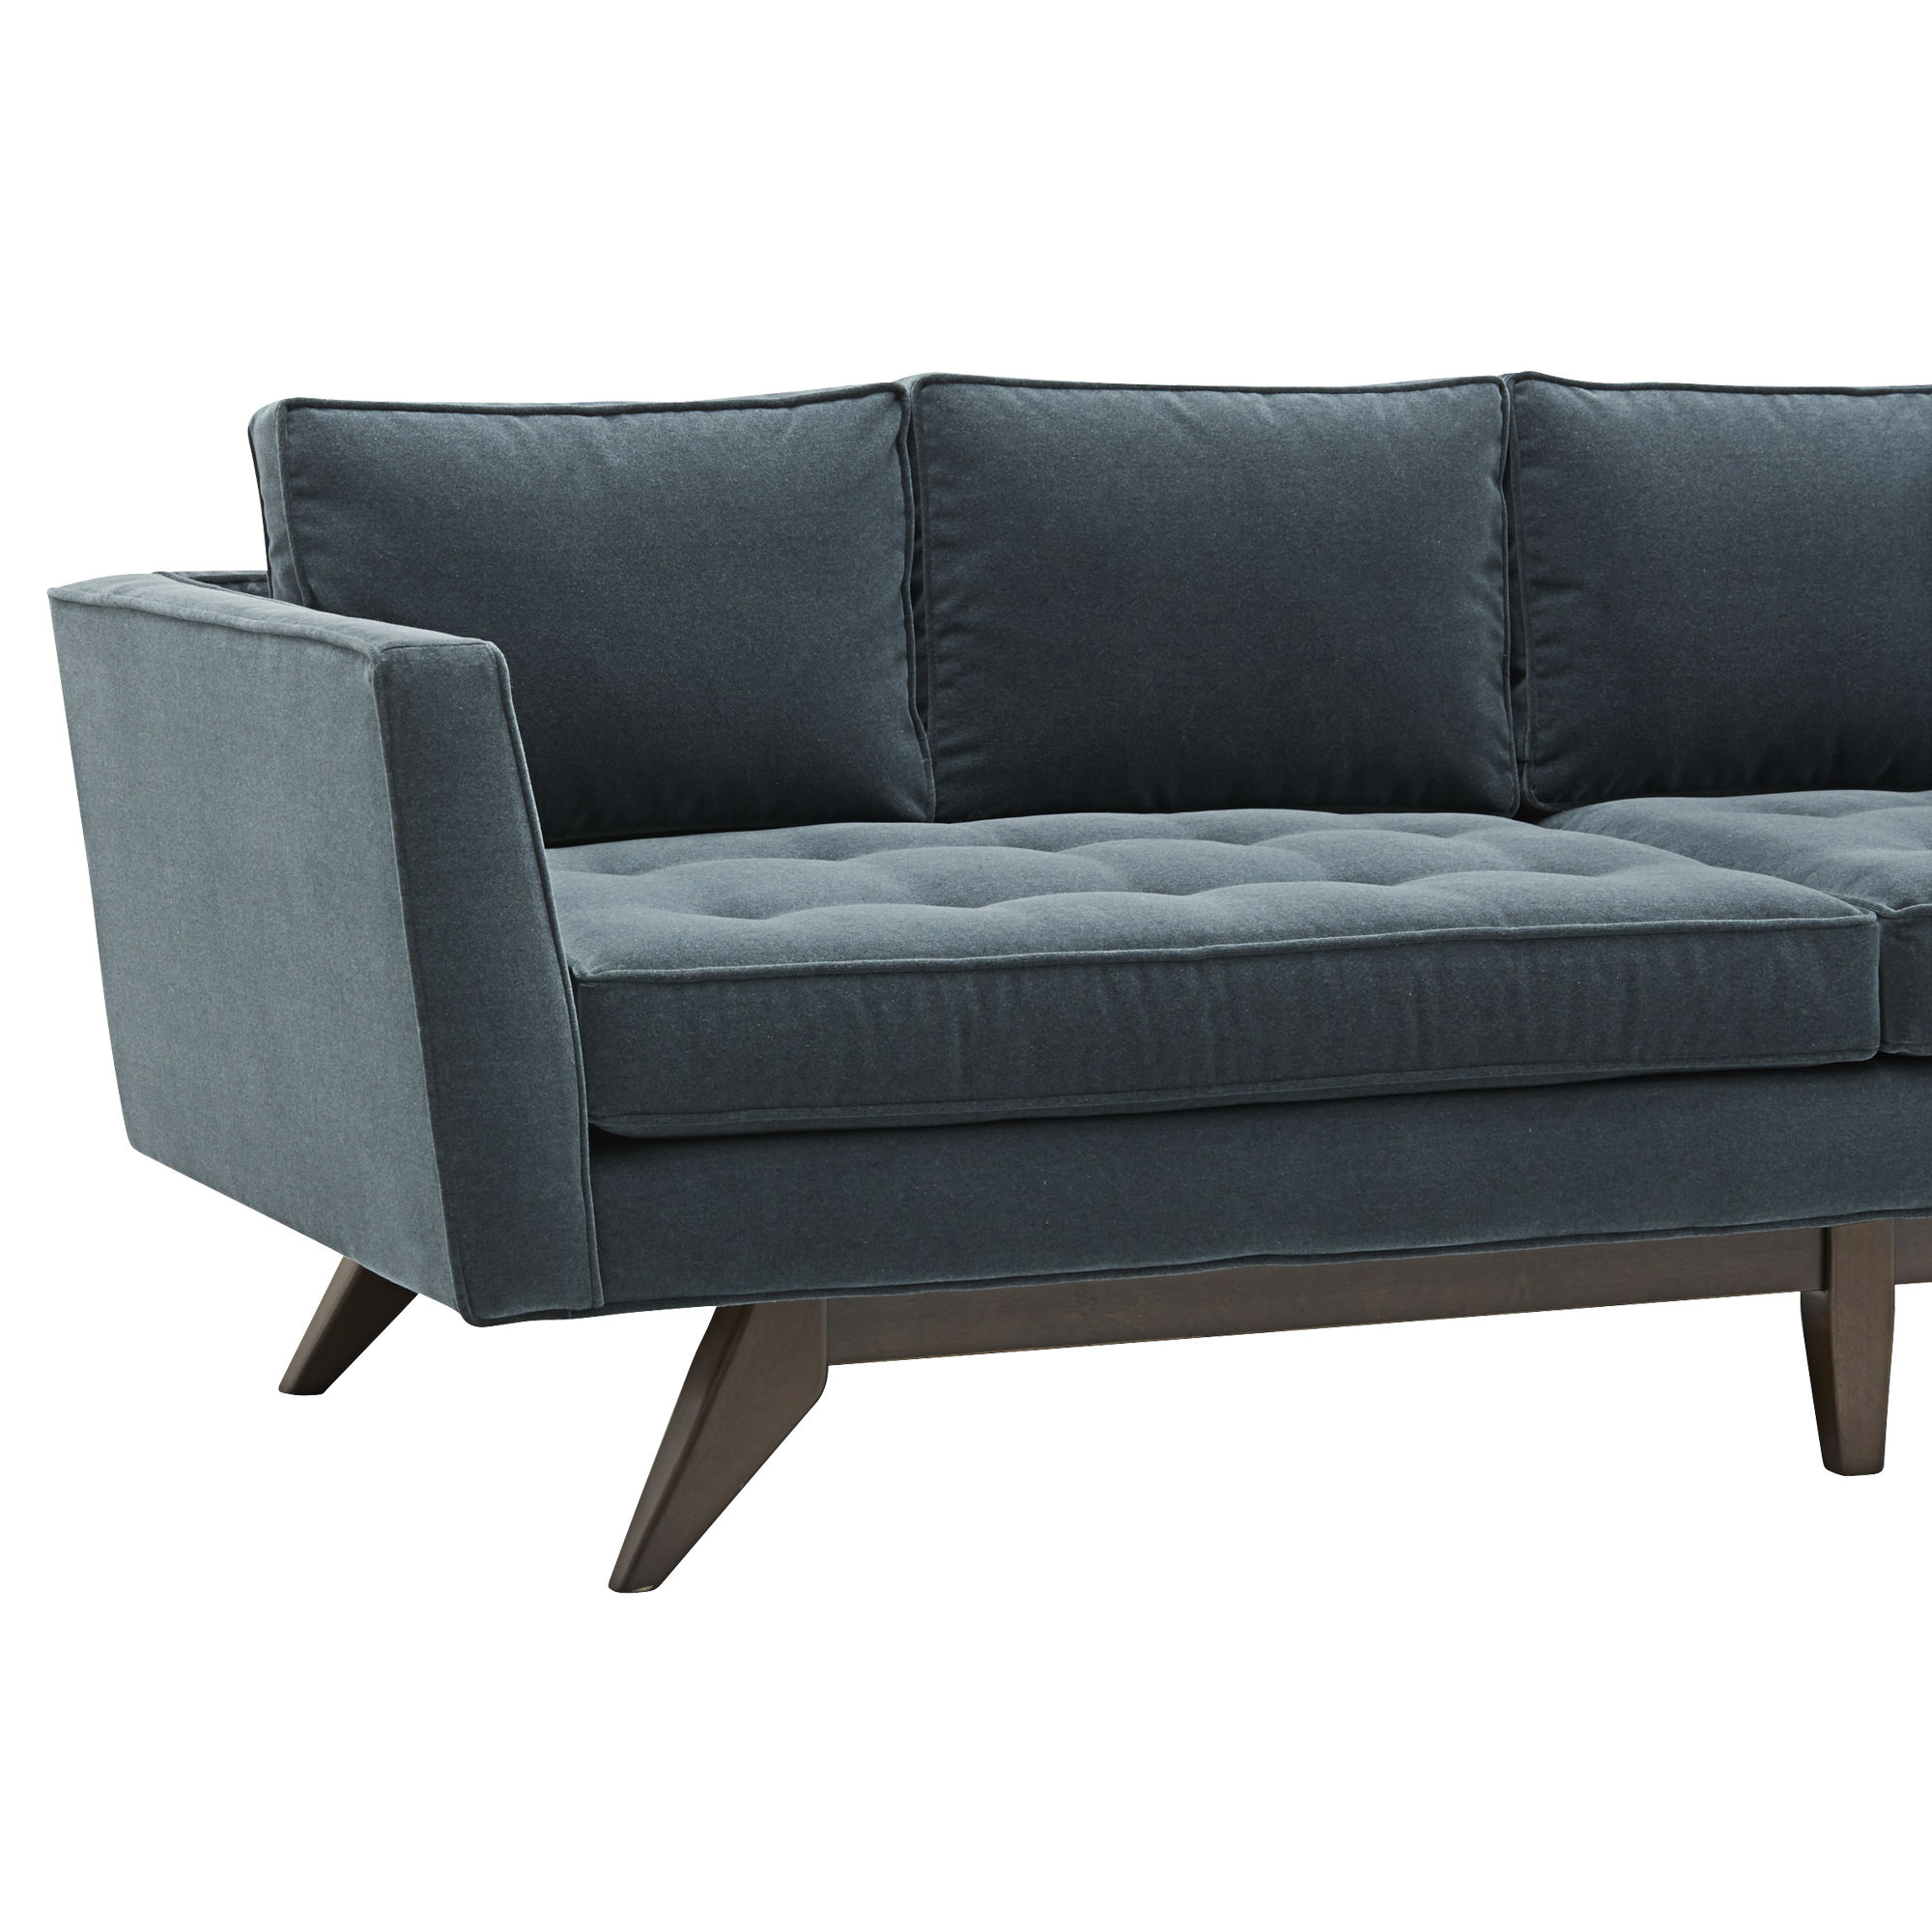 Dwell sofa review sofa menzilperde net for Affordable furniture reviews